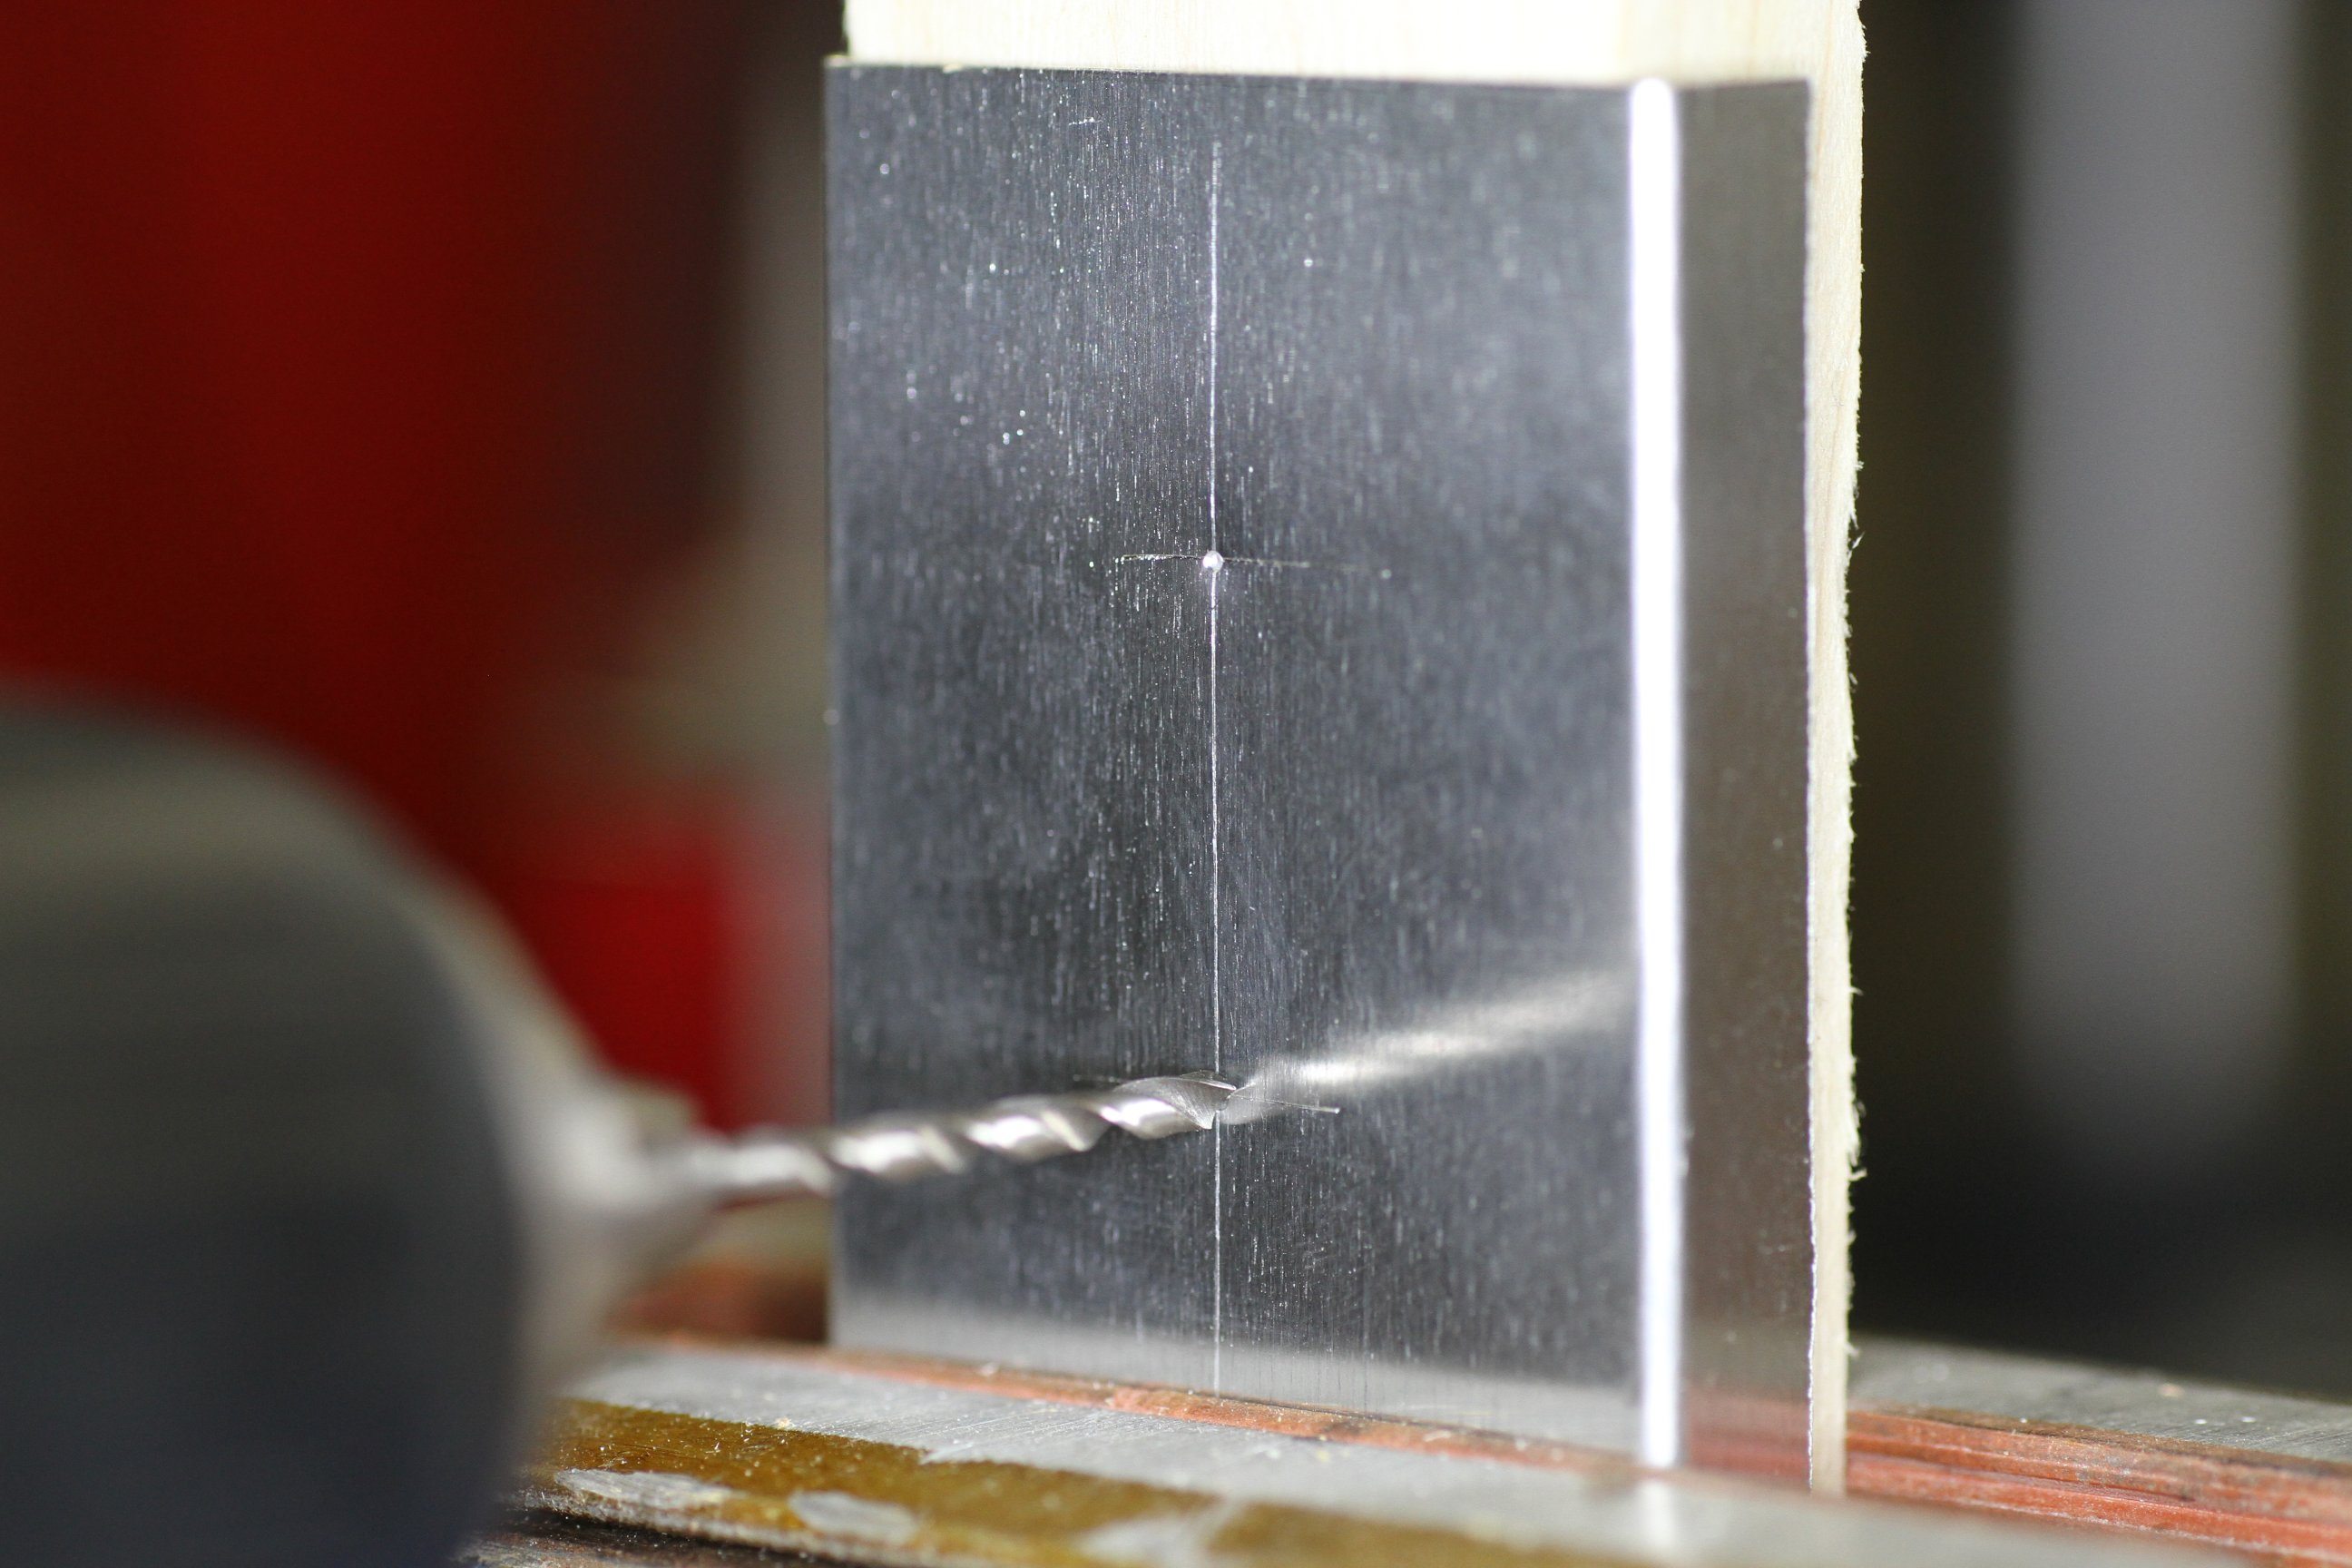 How To Drill Large Holes In Sheet Metal